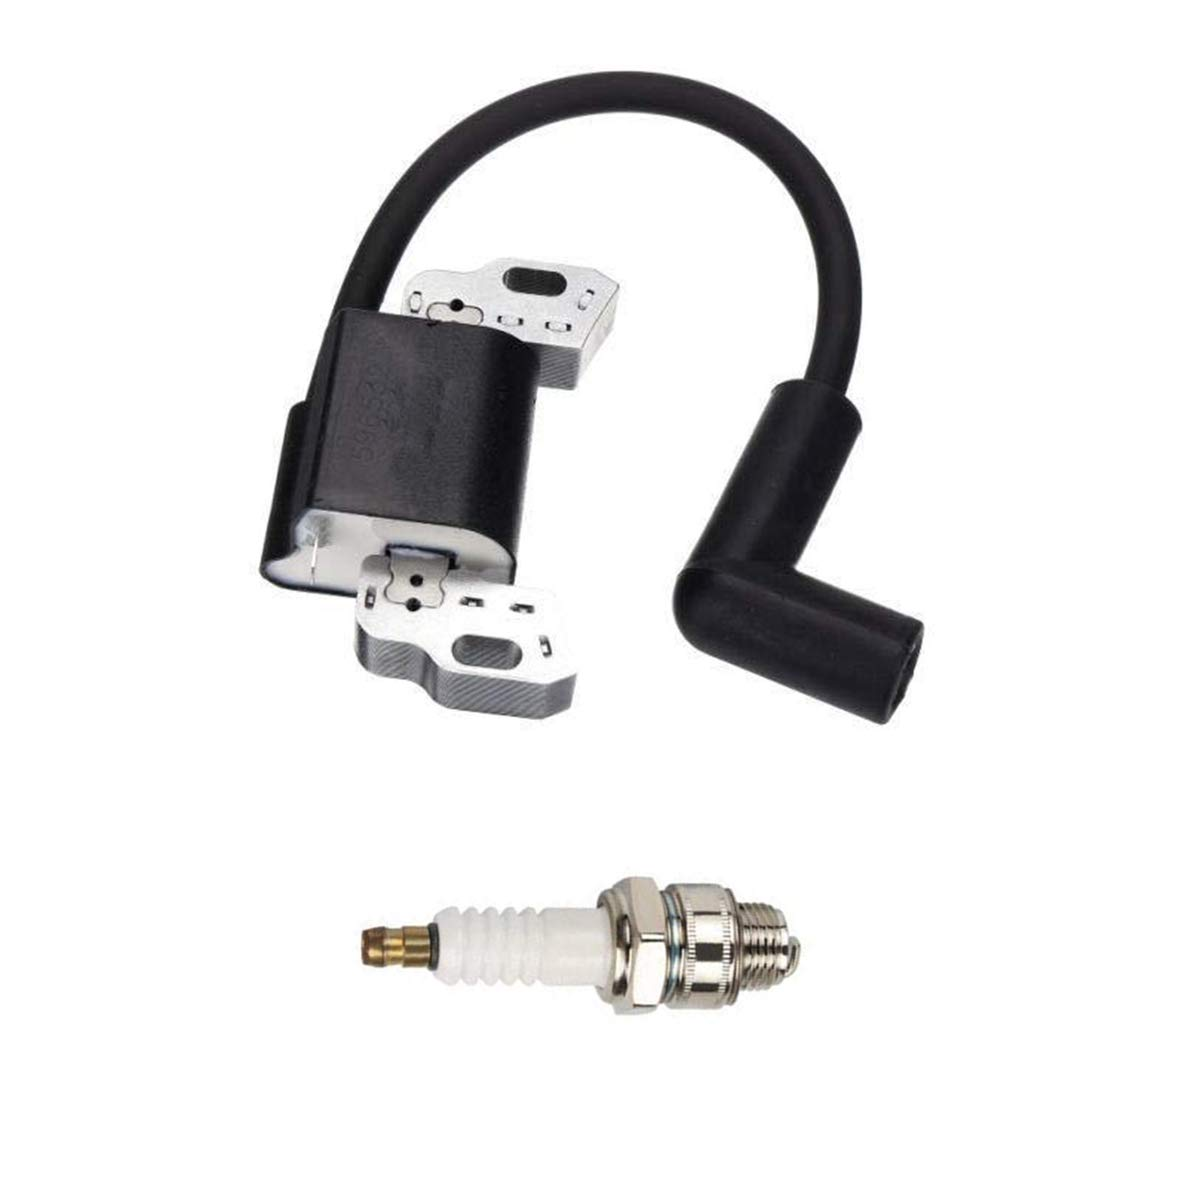 CQYD New 593872 Ignition Coil for Briggs /& Stratton 799582 798534 593872 Engines